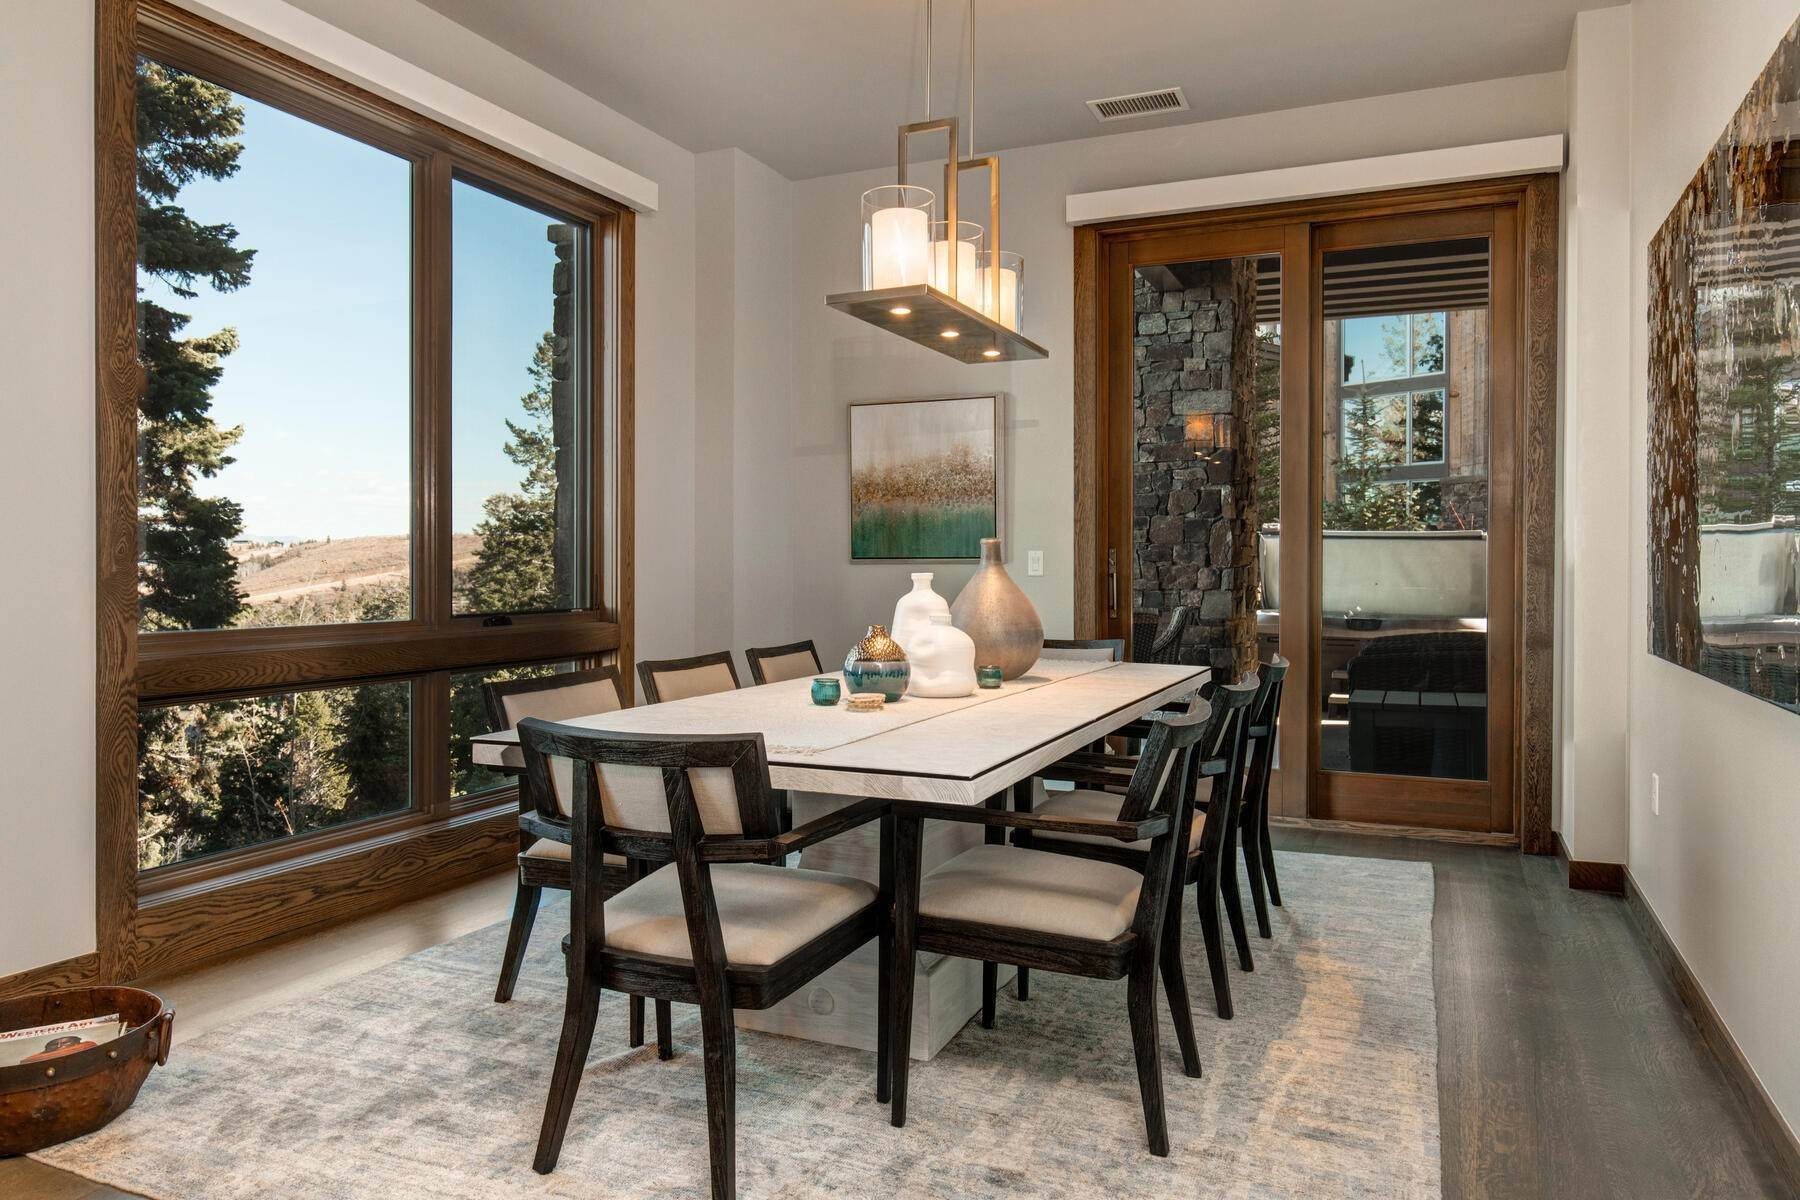 9. Condominiums for Sale at Ski-In Ski-Out Alpine Luxury Living at Stein Eriksen Residences 6702 Stein Circle #131 Park City, Utah 84060 United States